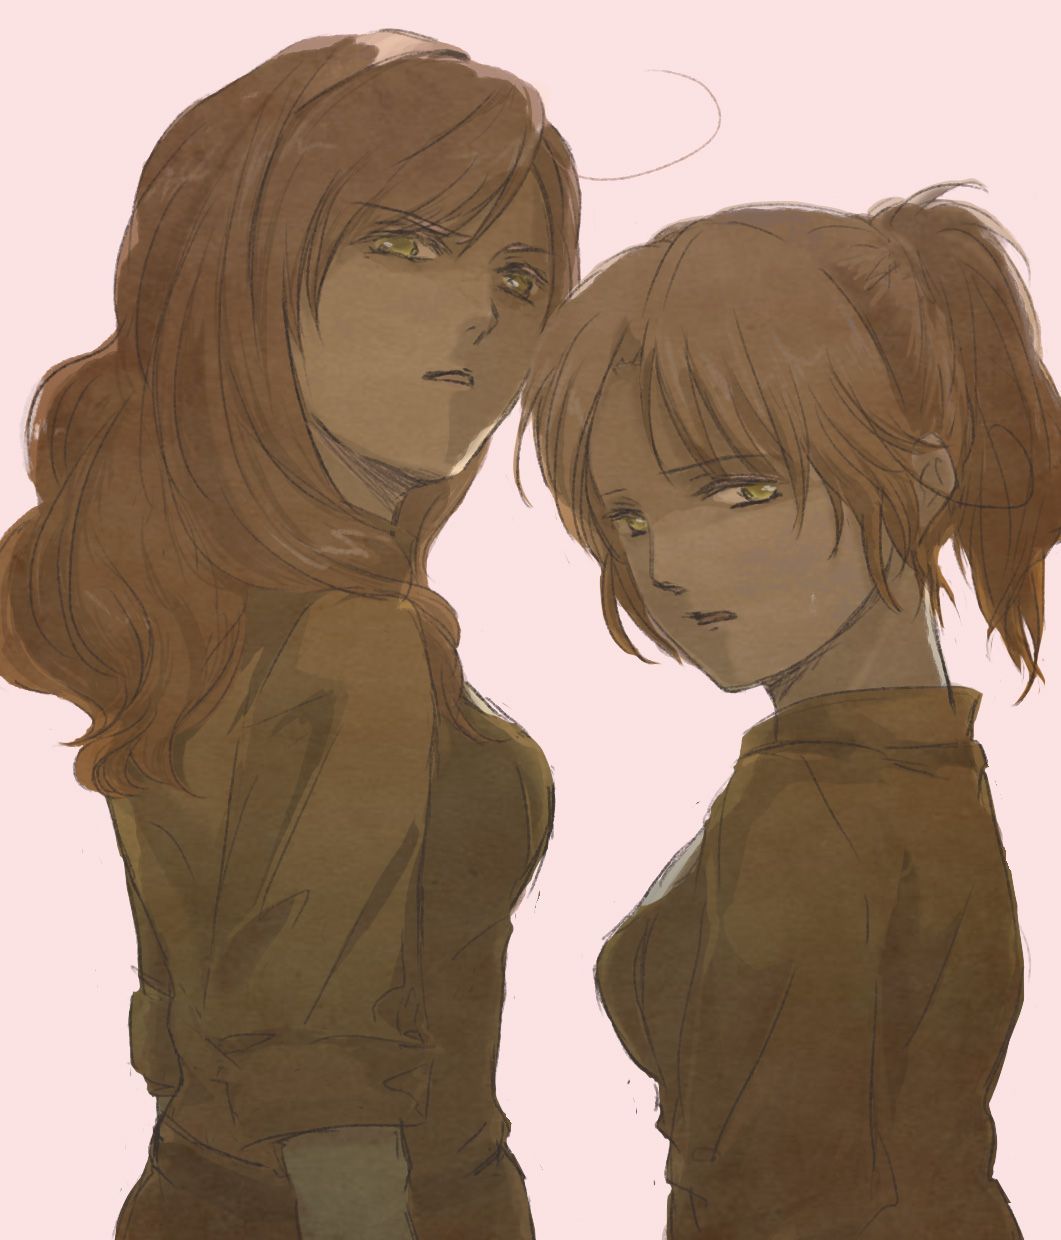 Tags: Axis Powers: Hetalia, North Italy, Pixiv, South Italy, Axis Power Countries, Mediterranean Countries, Nyotalia, Pixiv Id 1608480, North Italy (Female), South Italy (Female)